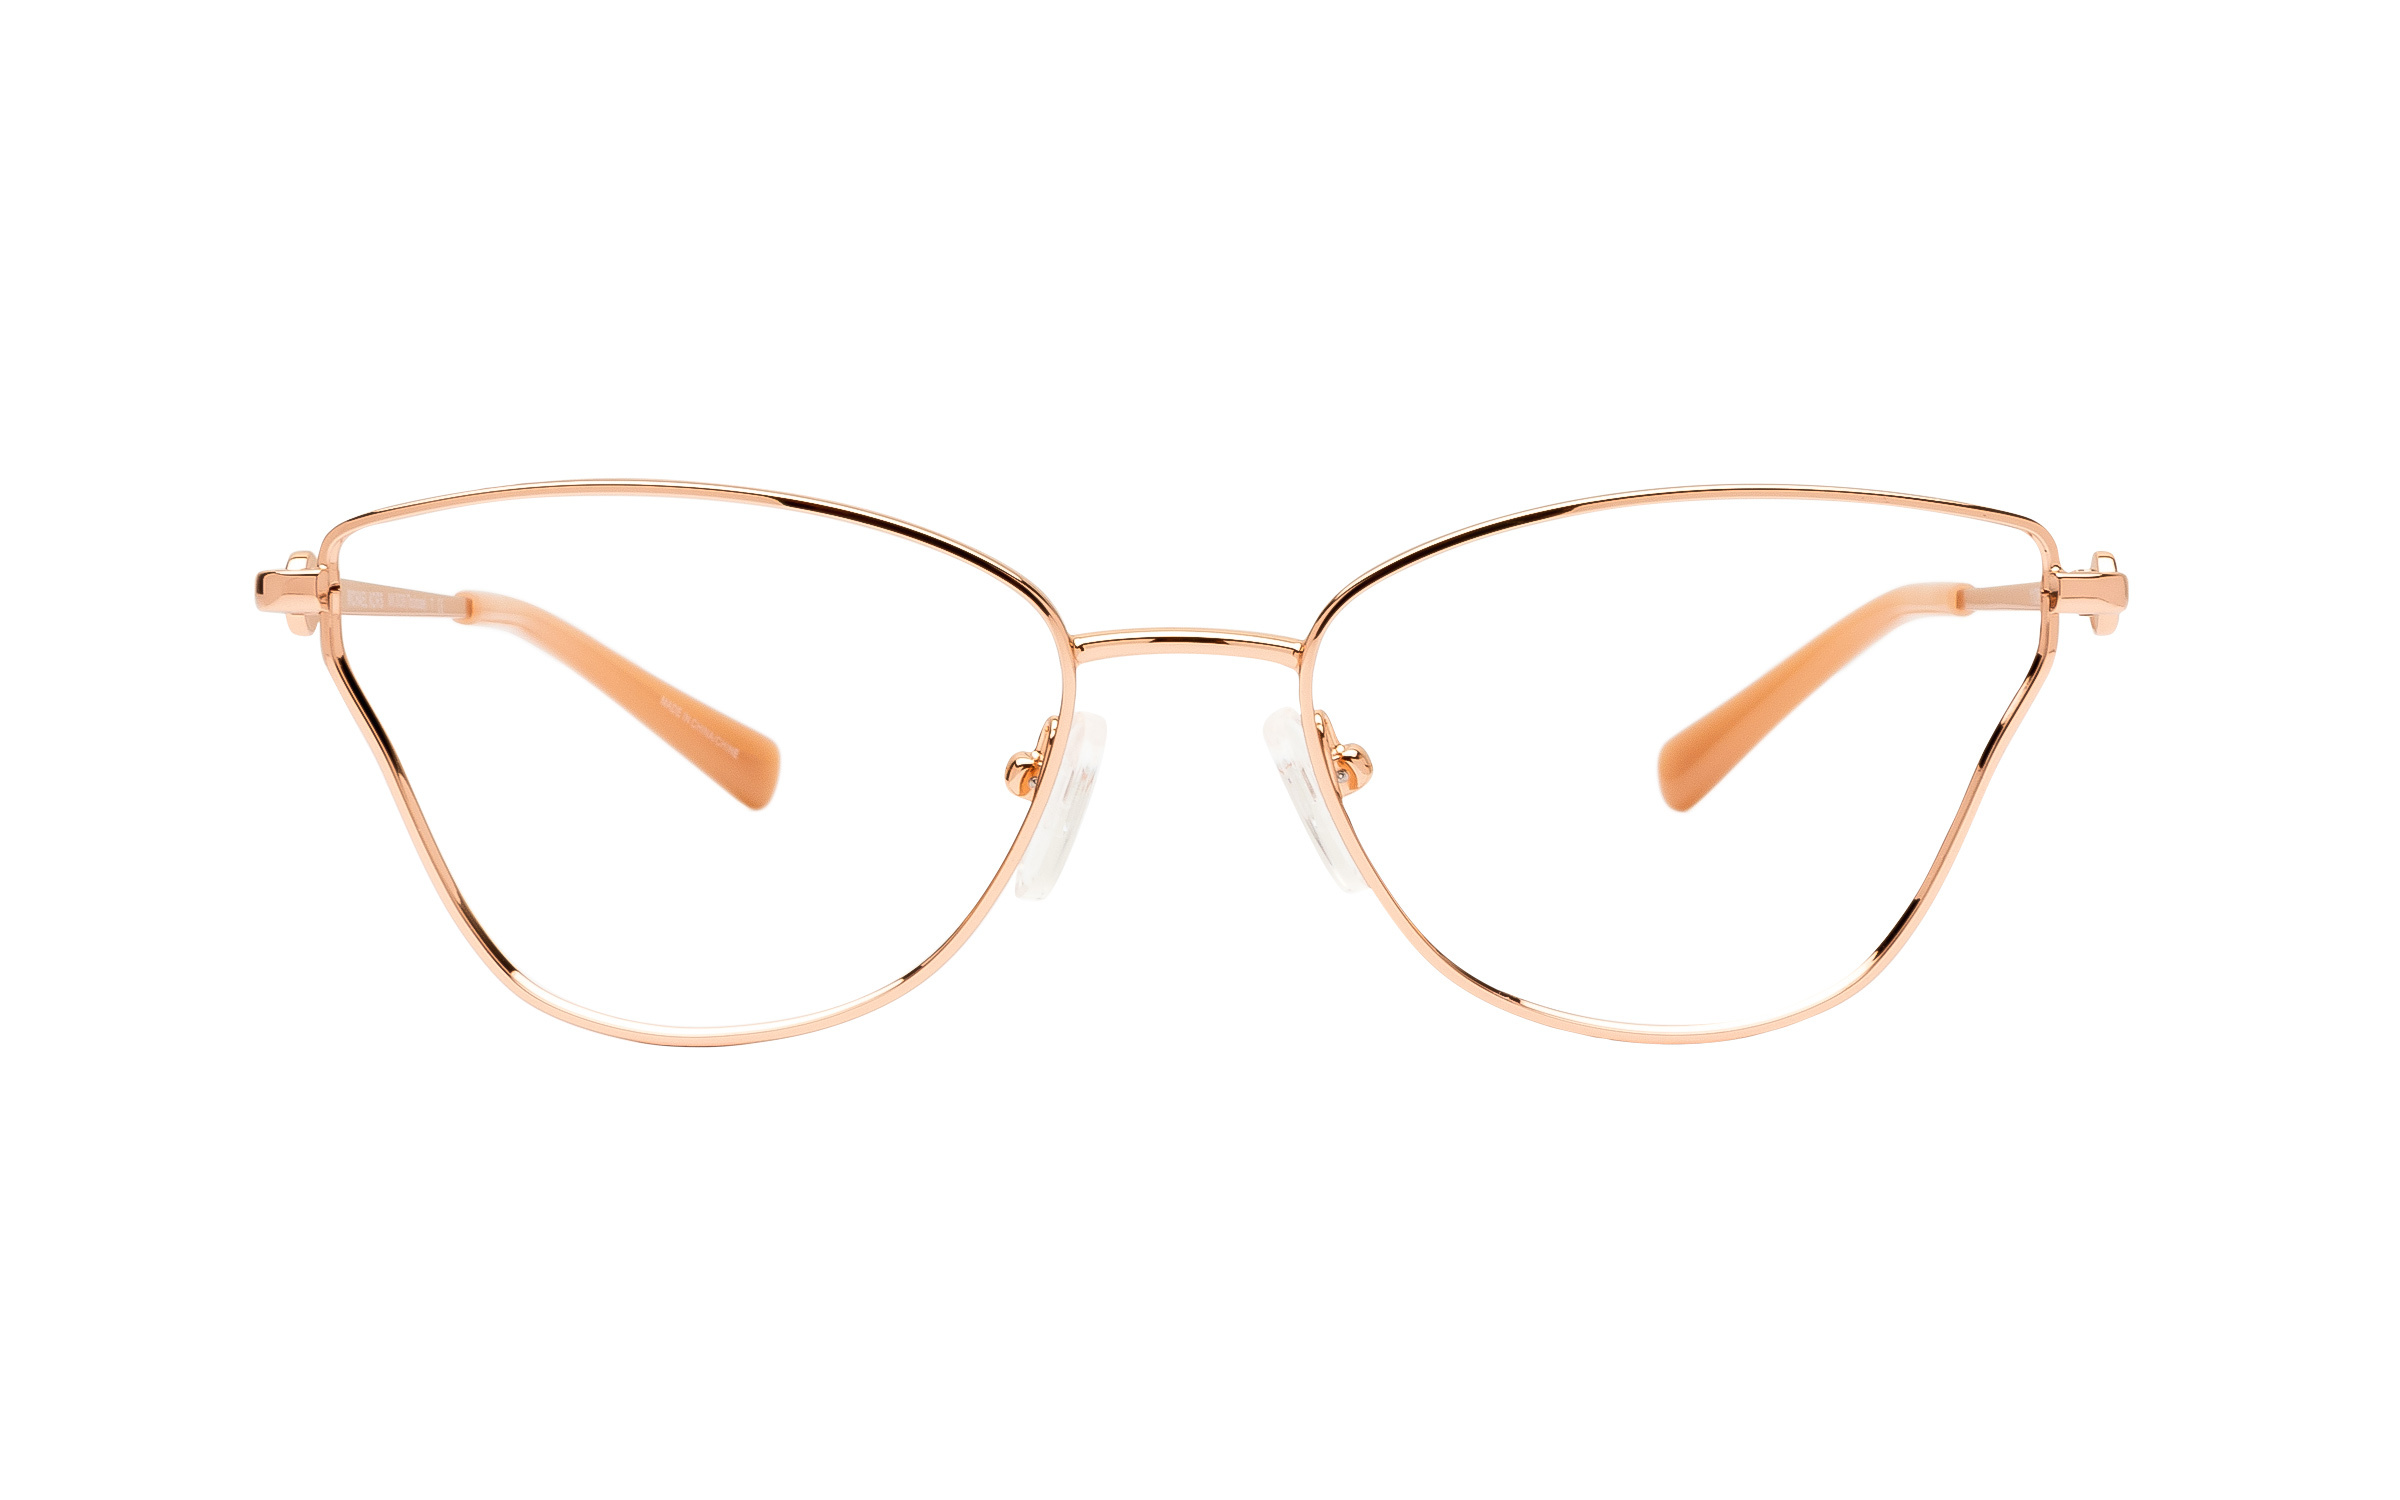 Michael Kors Toulouse MK3039 1108 (54) Eyeglasses and Frame in Rose Gold Pink/Gold | Metal